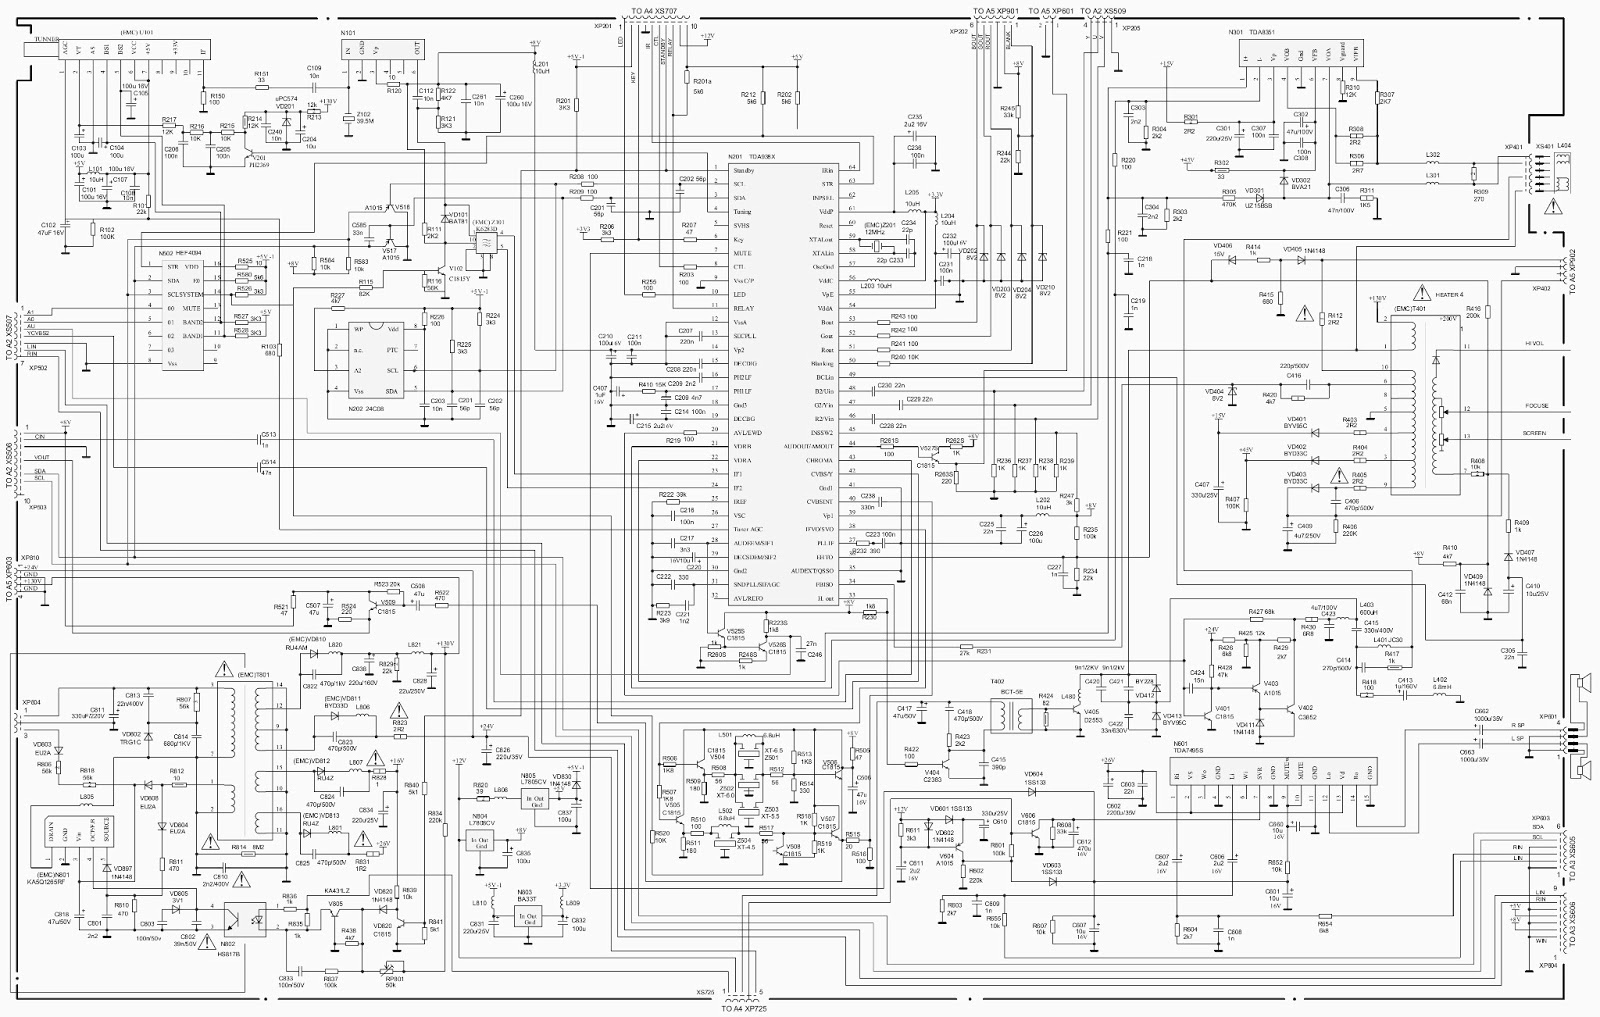 Hisense Tf2906du A H3498 Changhong Ch 16 Schematic Diagram Wiring Ac Click On Circuit To Magnify